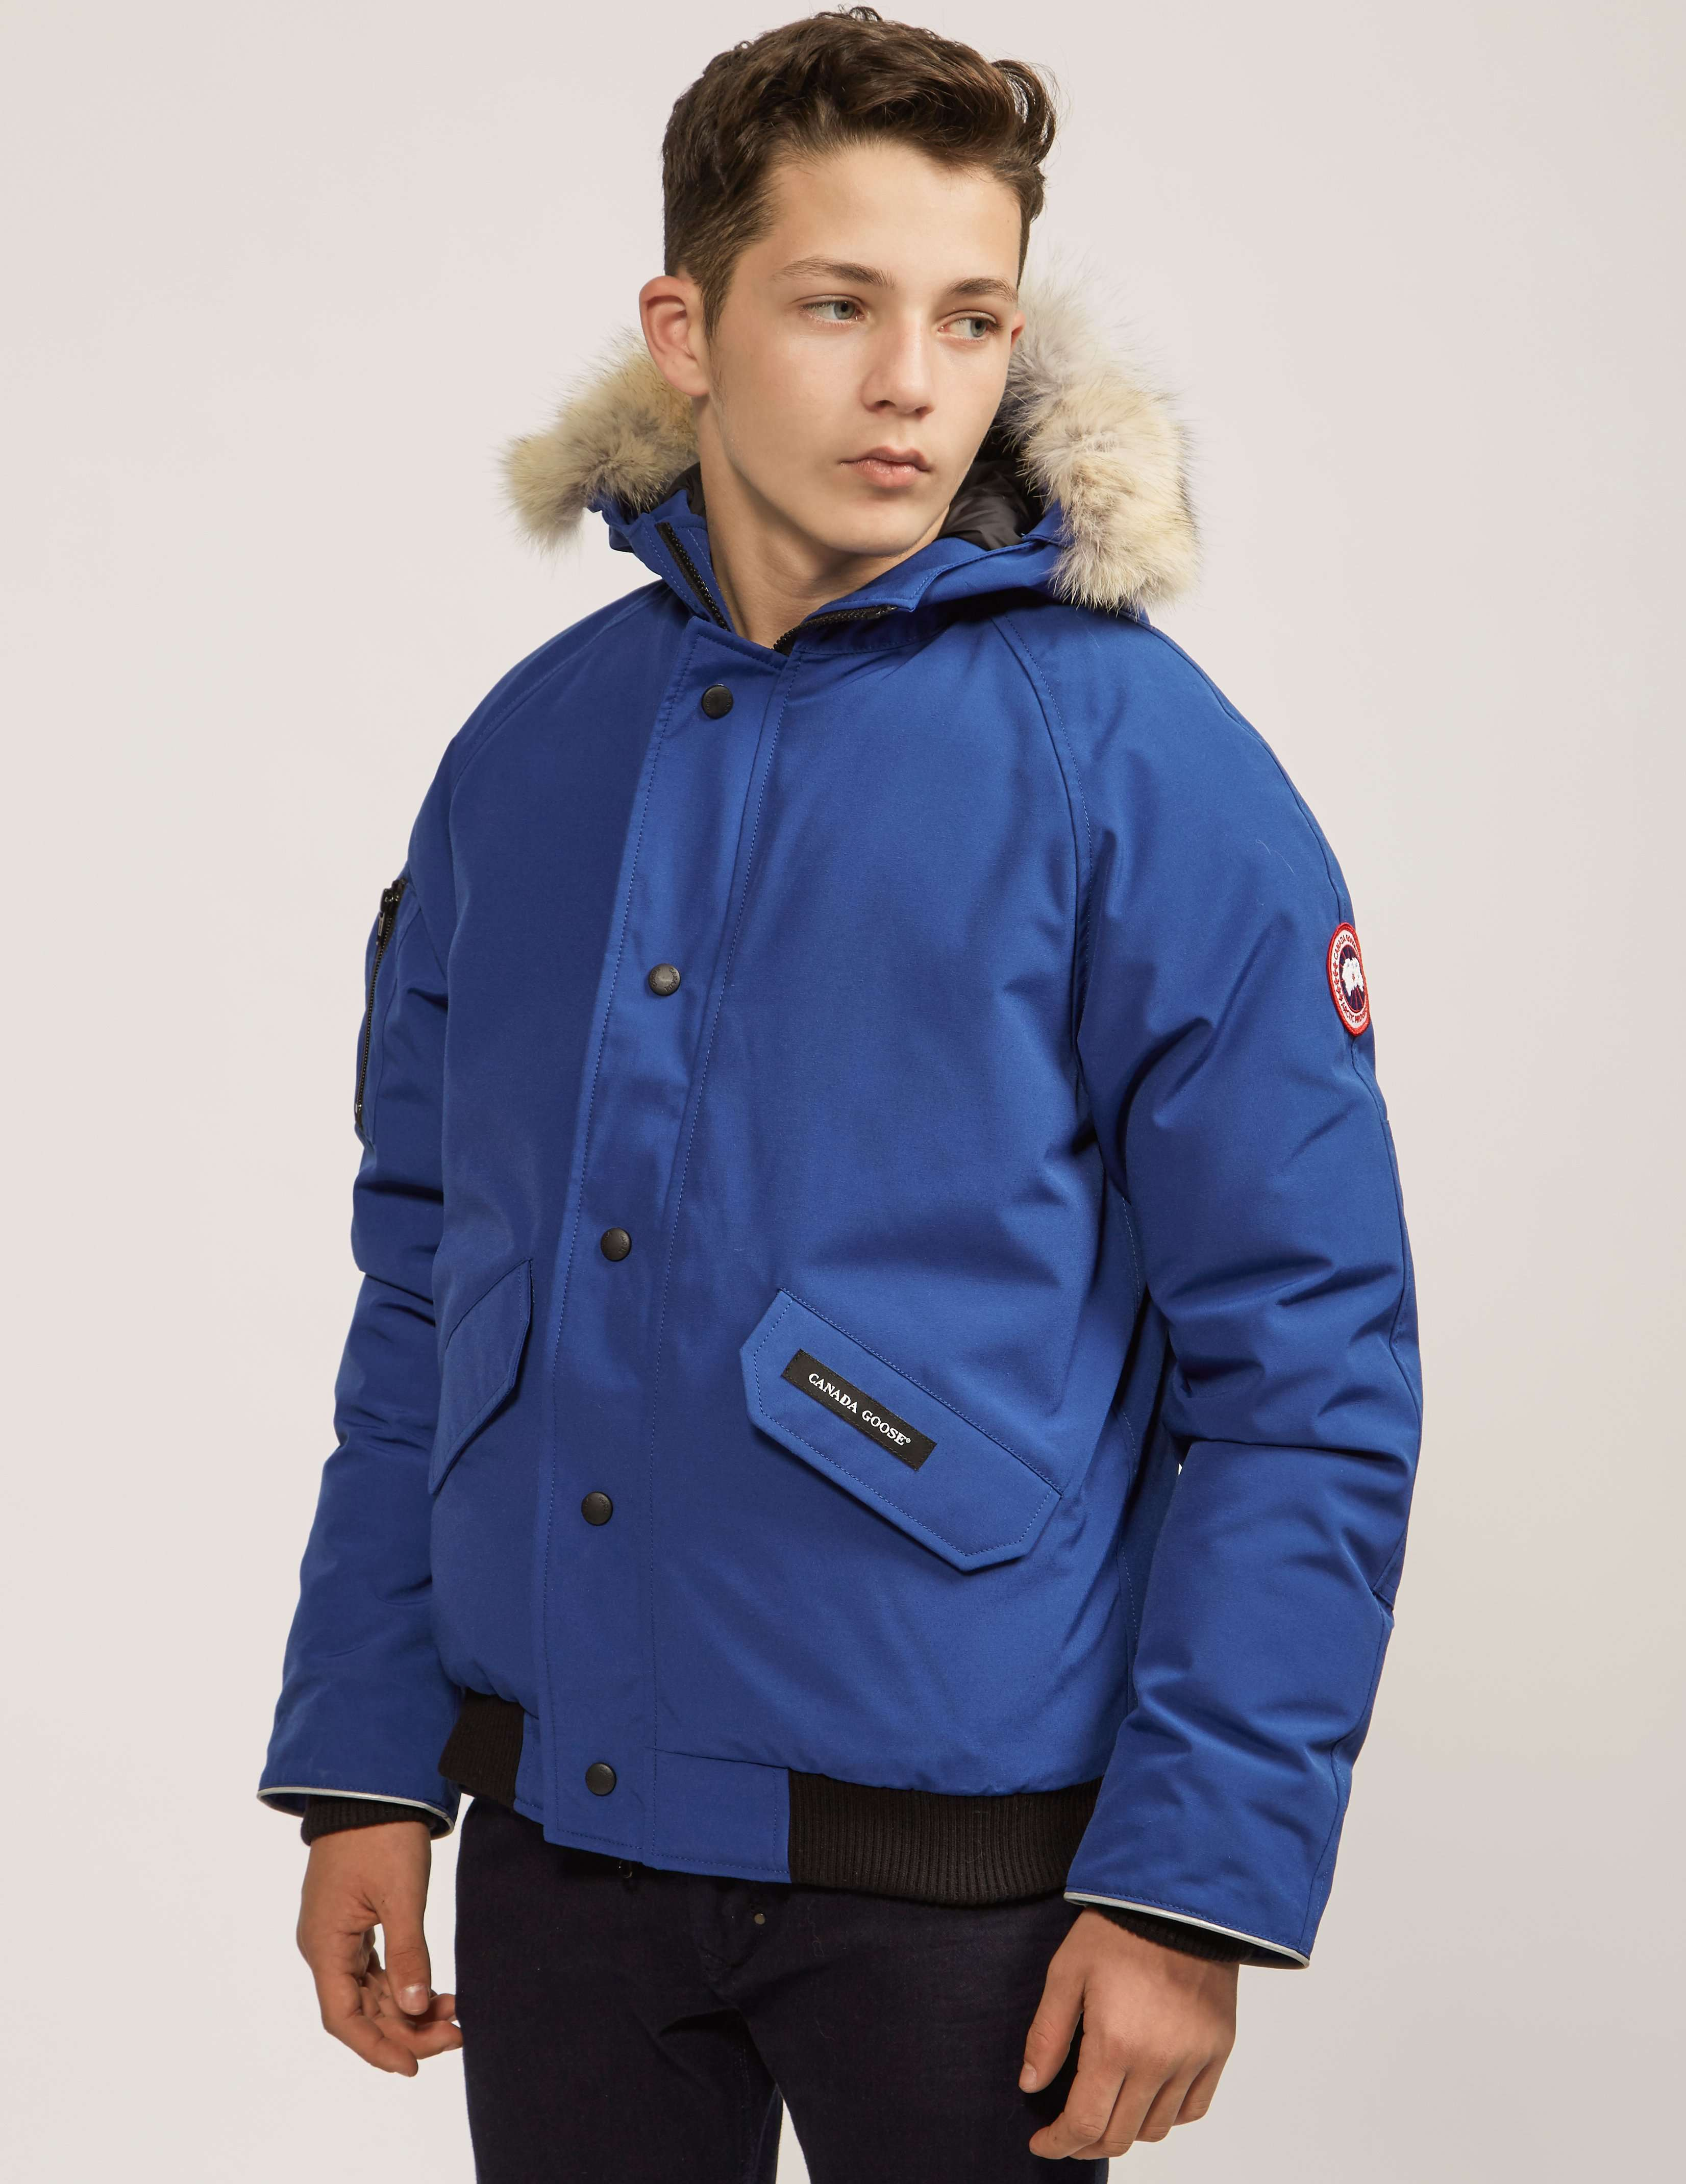 Where to buy cheap canada goose jackets